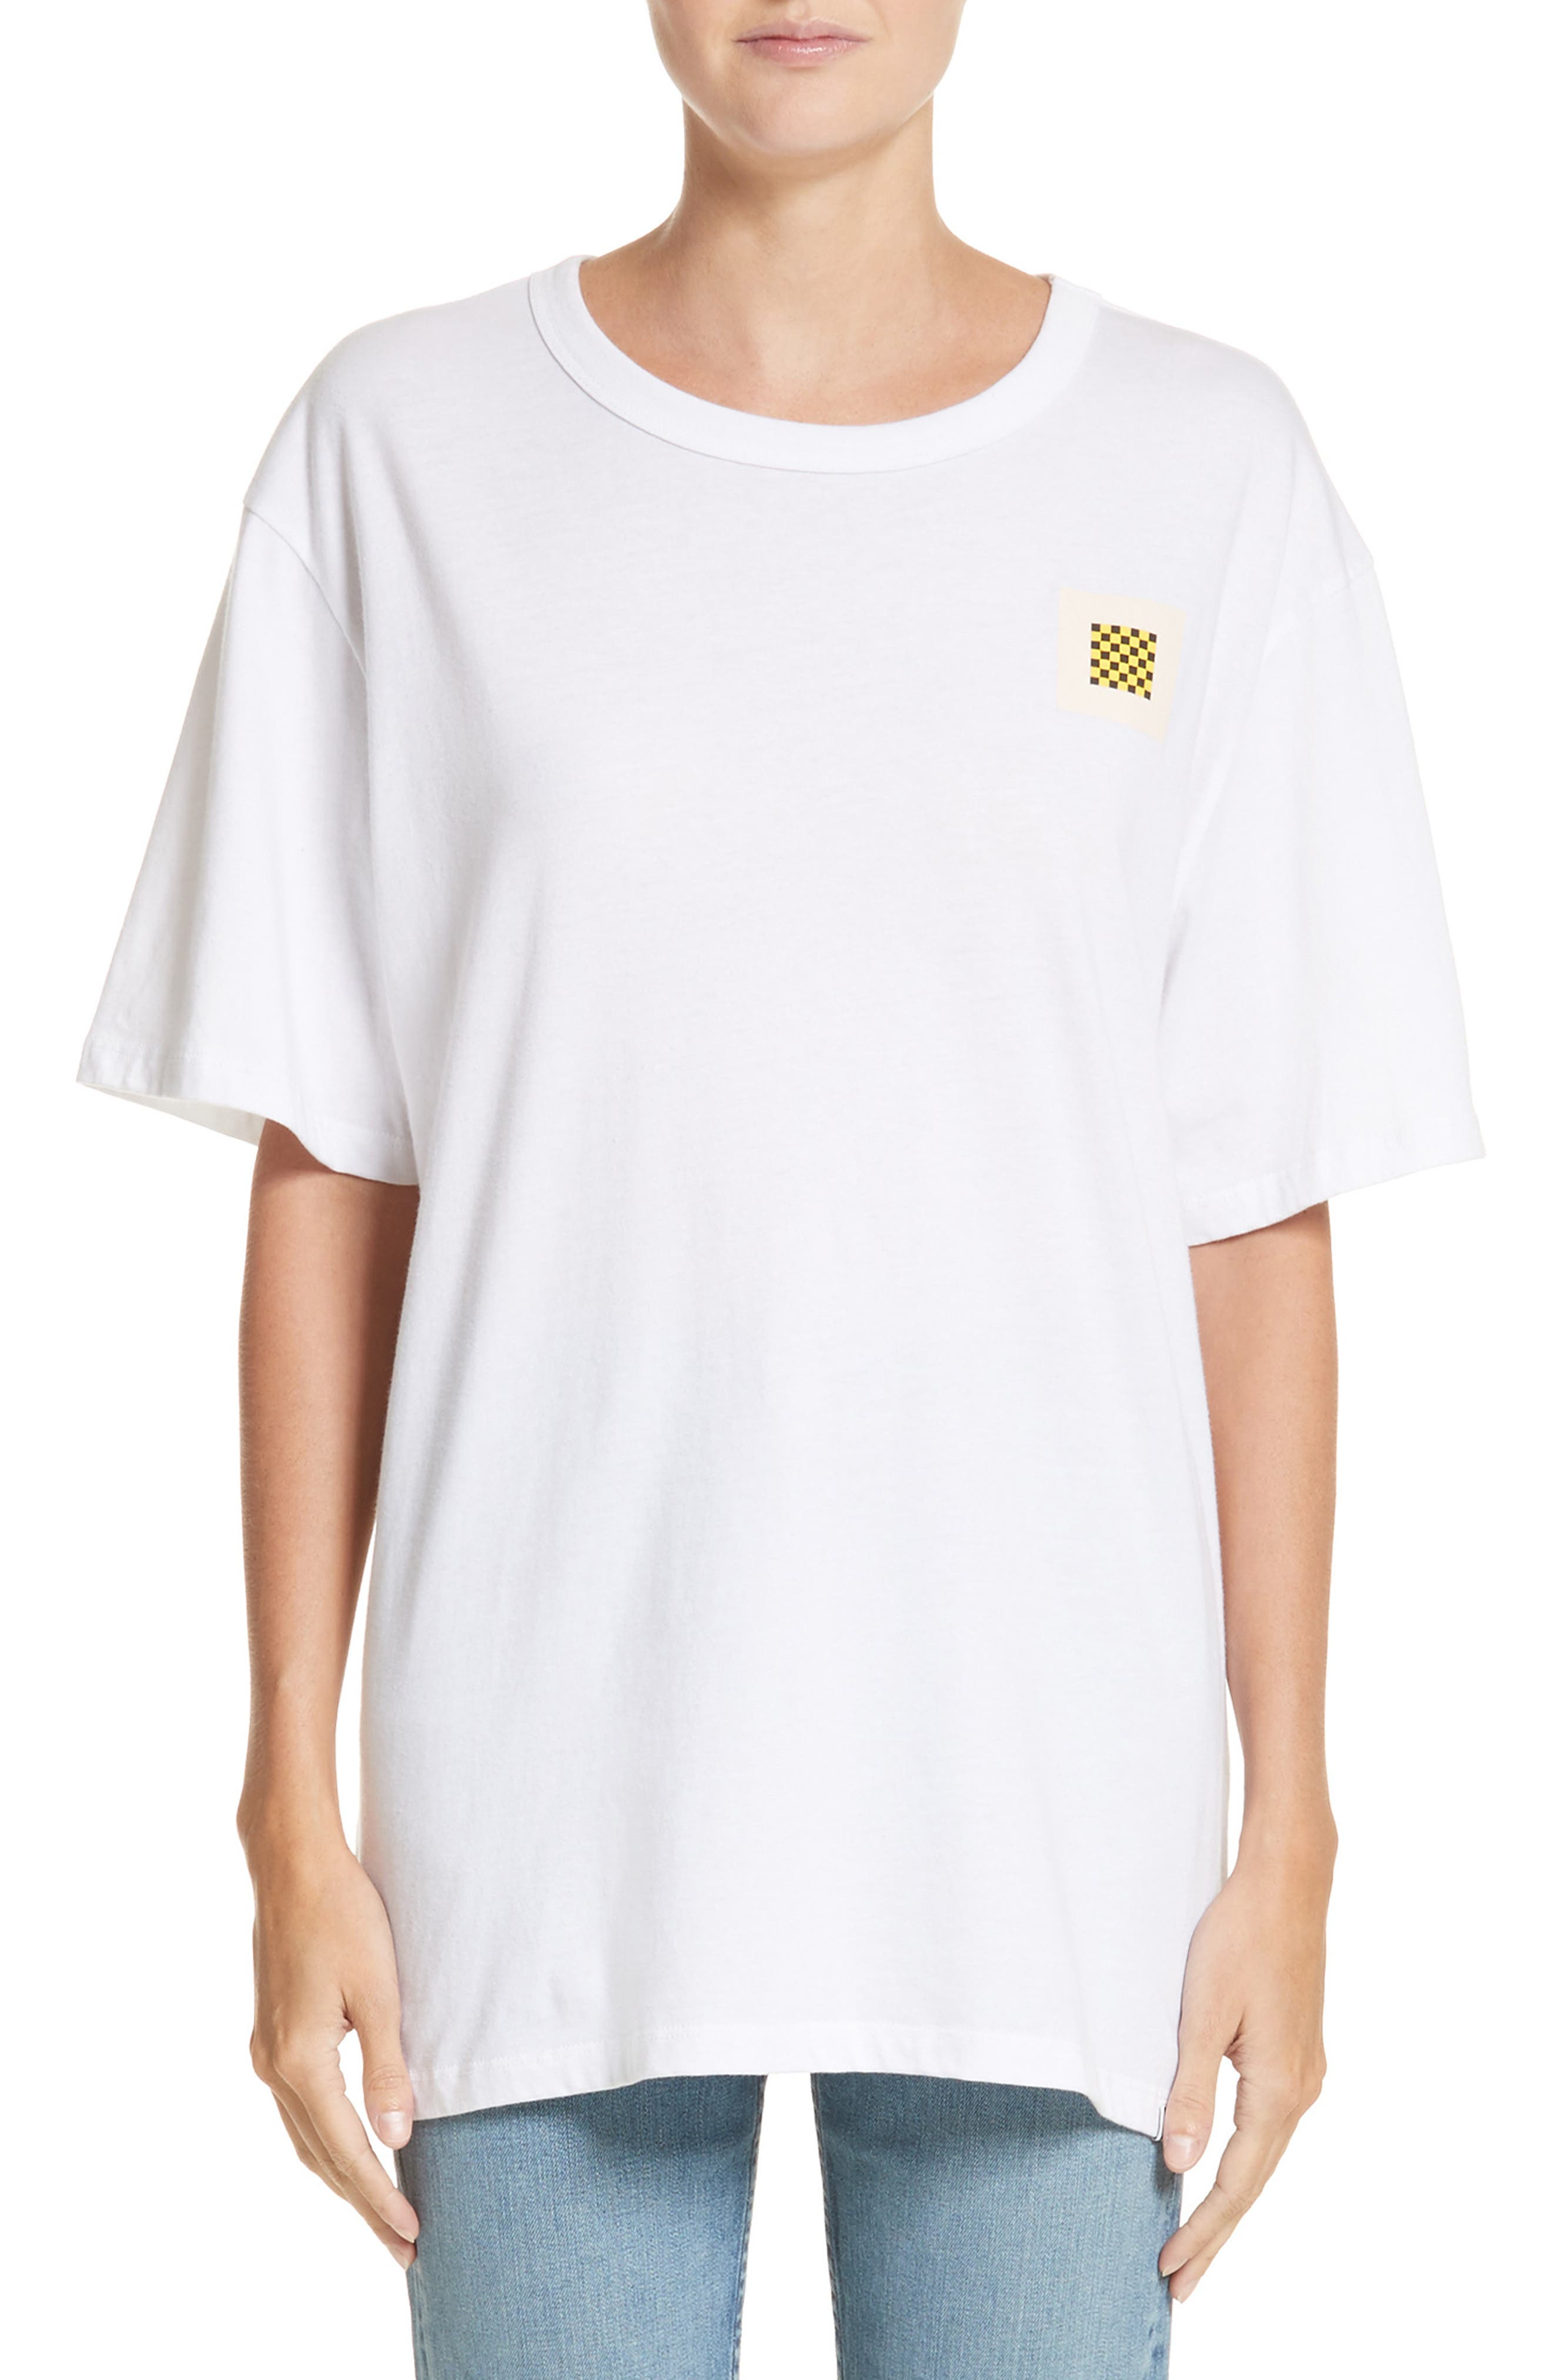 PSWL Graphic Jersey Tee,                             Alternate thumbnail 3, color,                             White